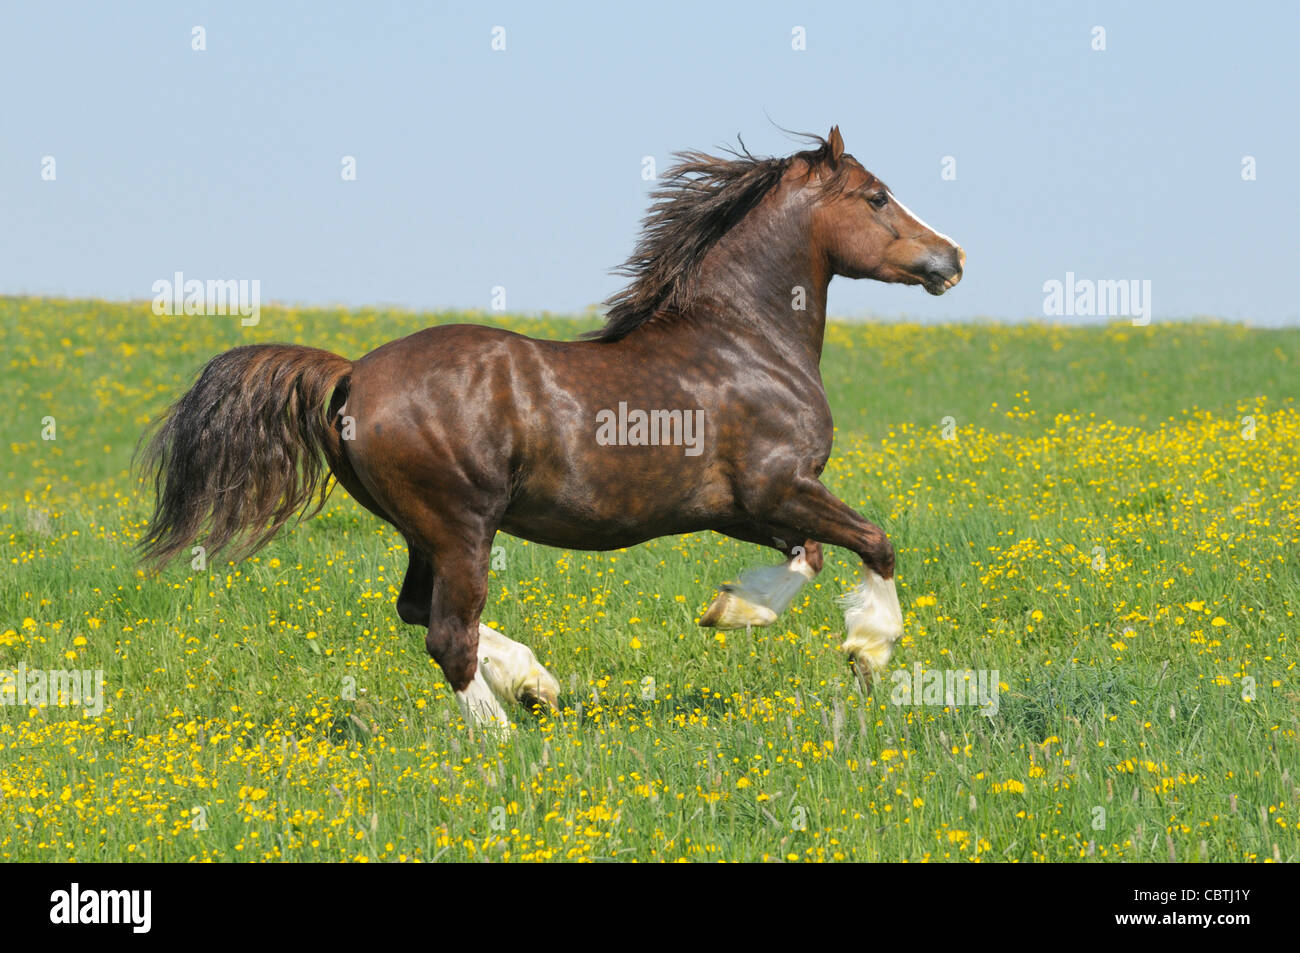 Welsh pony stallion galloping in the field - Stock Image